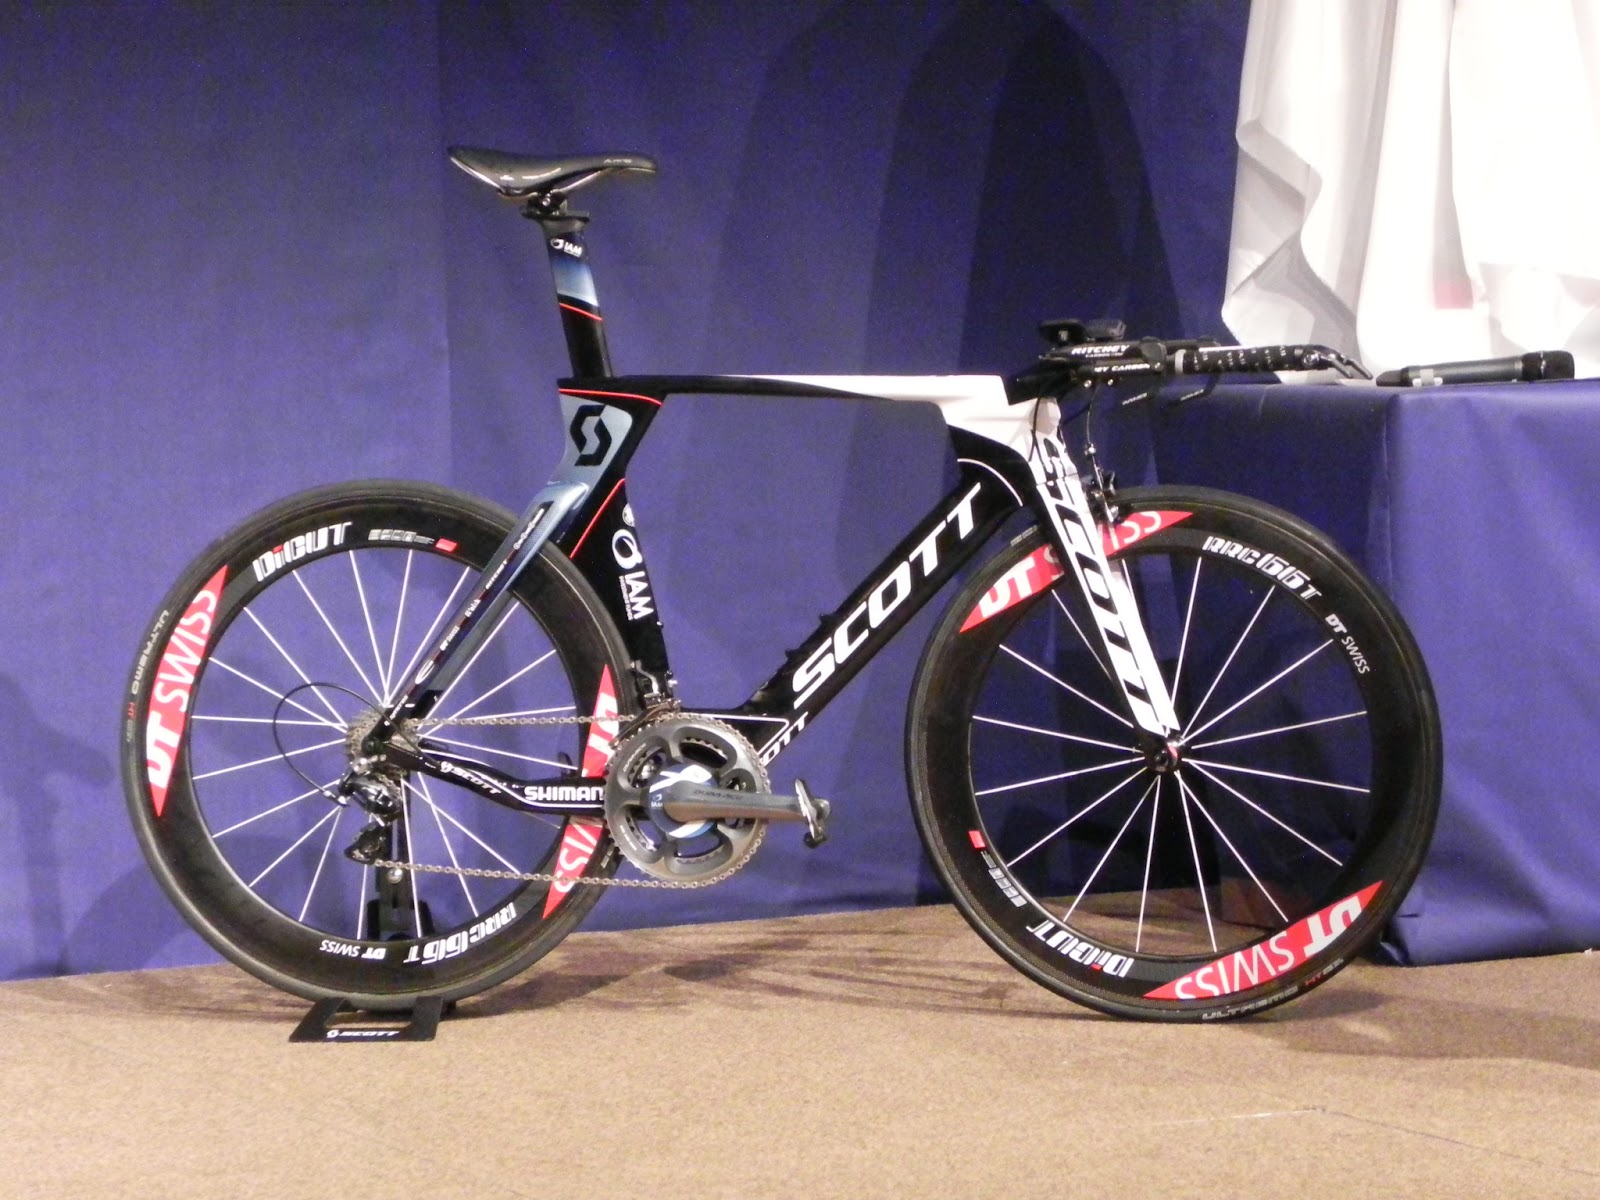 Team IAM Cycling will ride Scott bikes (Foil & Plasma 3) (photo by Guillaume Boillot)